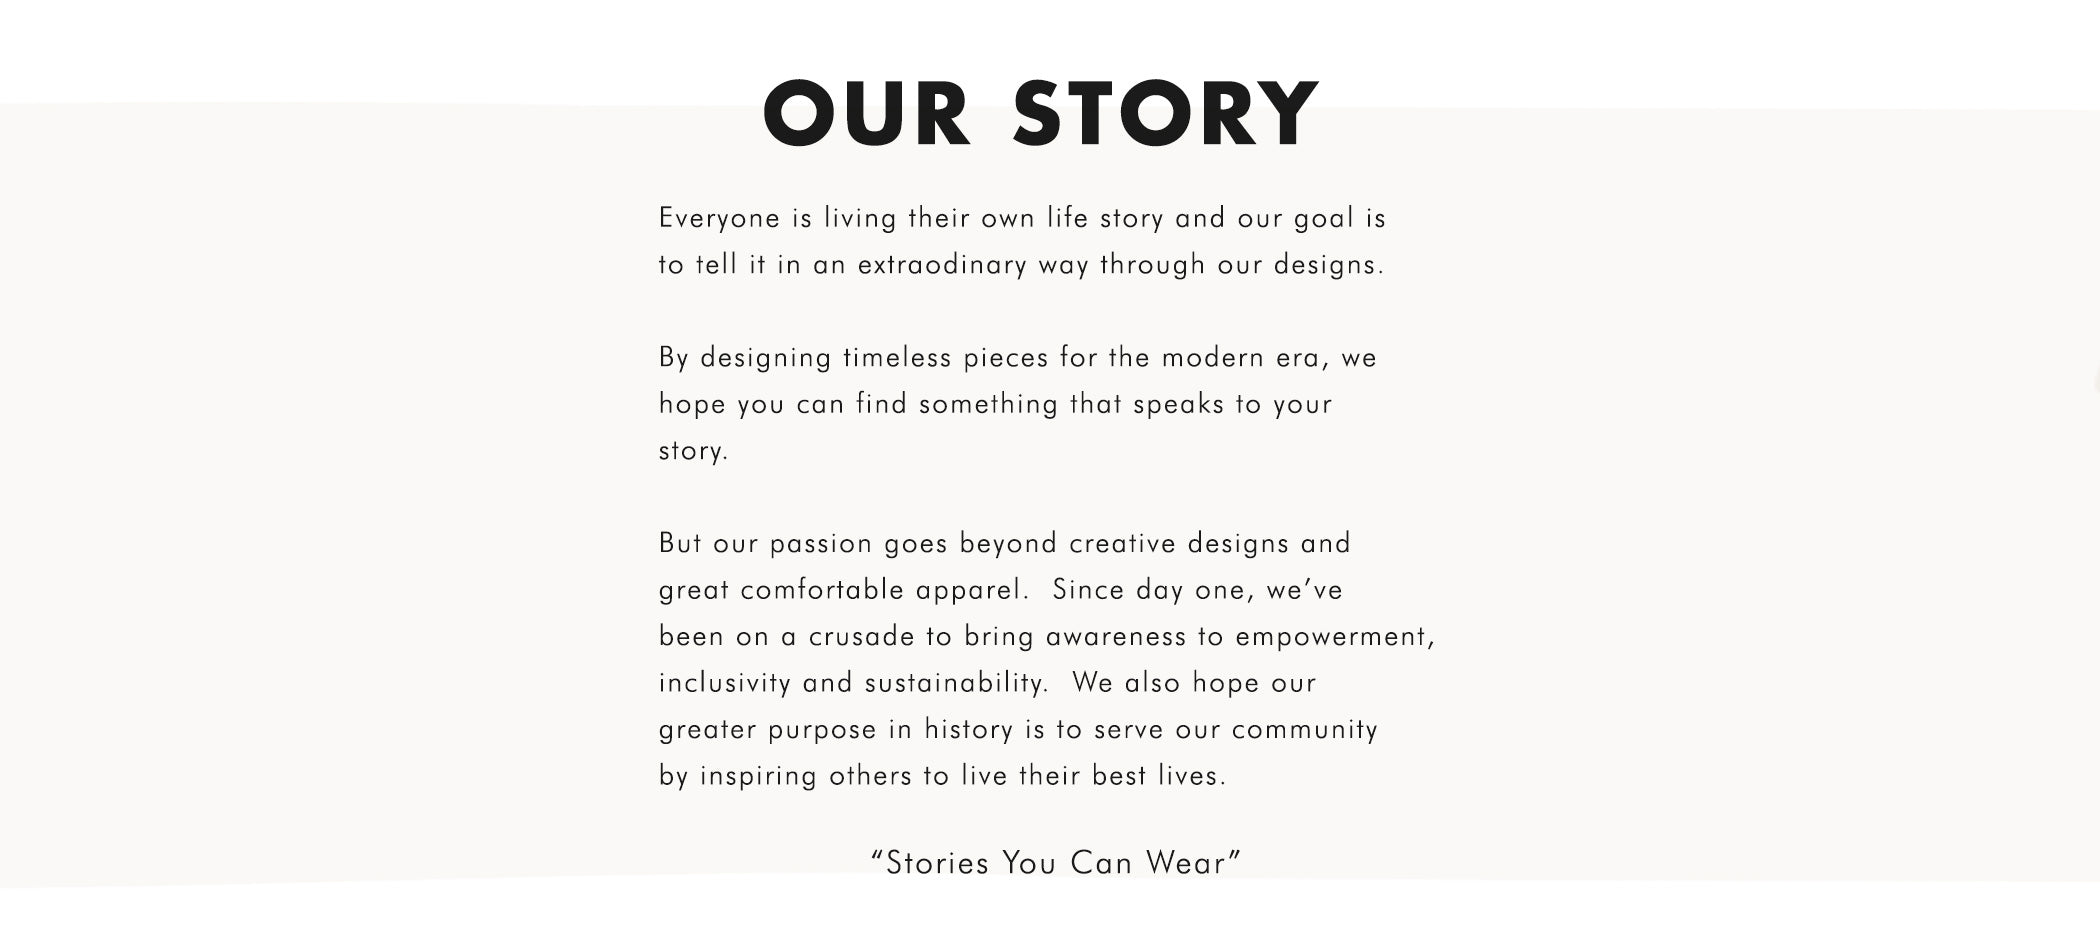 Stories You Can Wear by Thread Tank